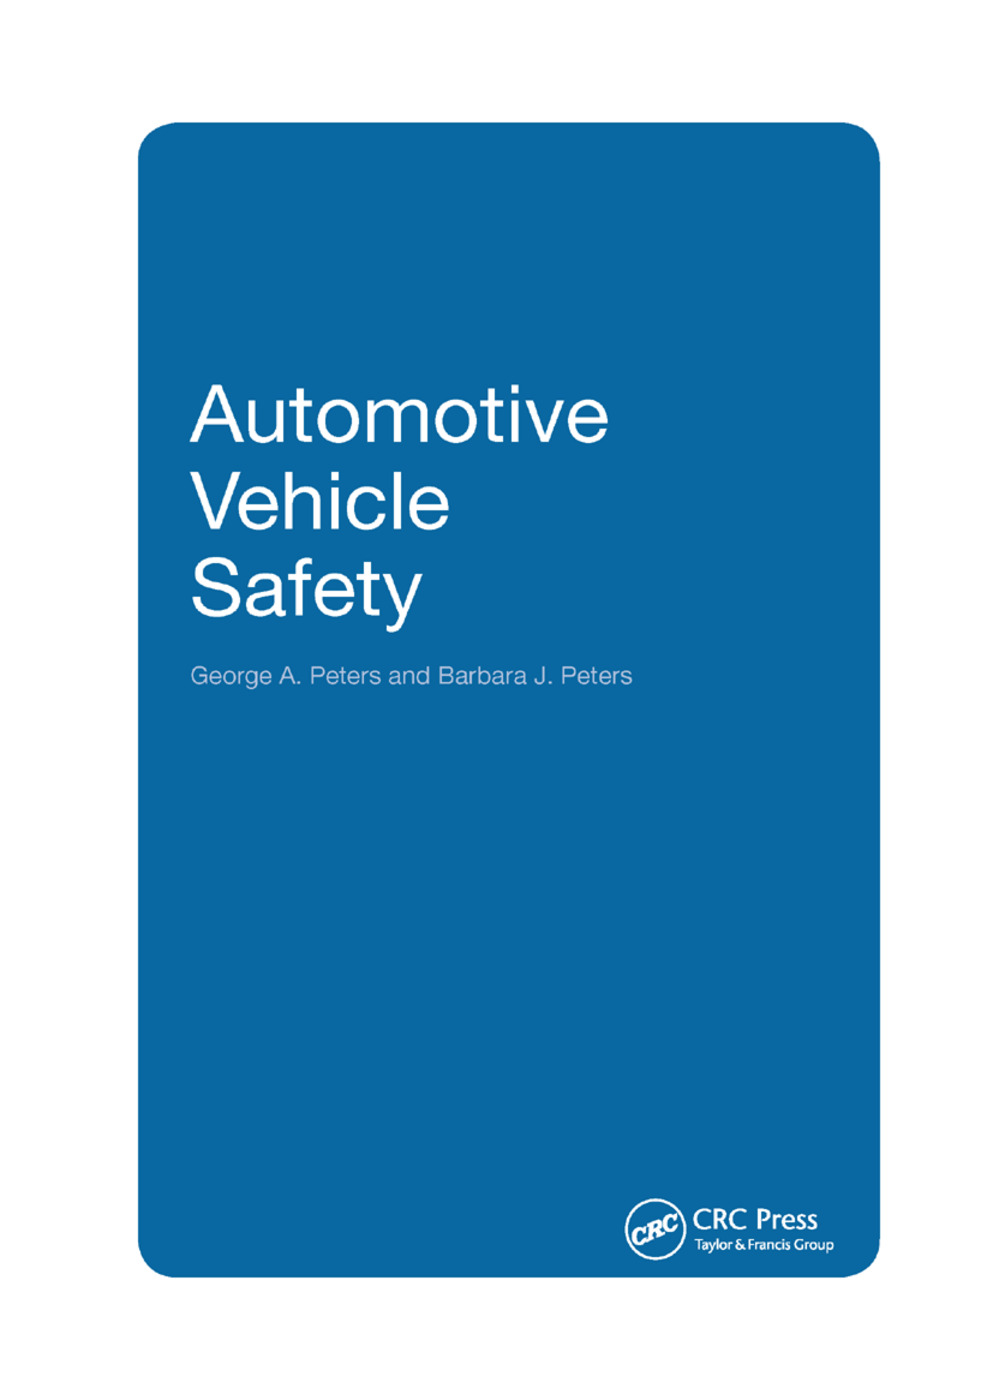 Automotive Vehicle Safety